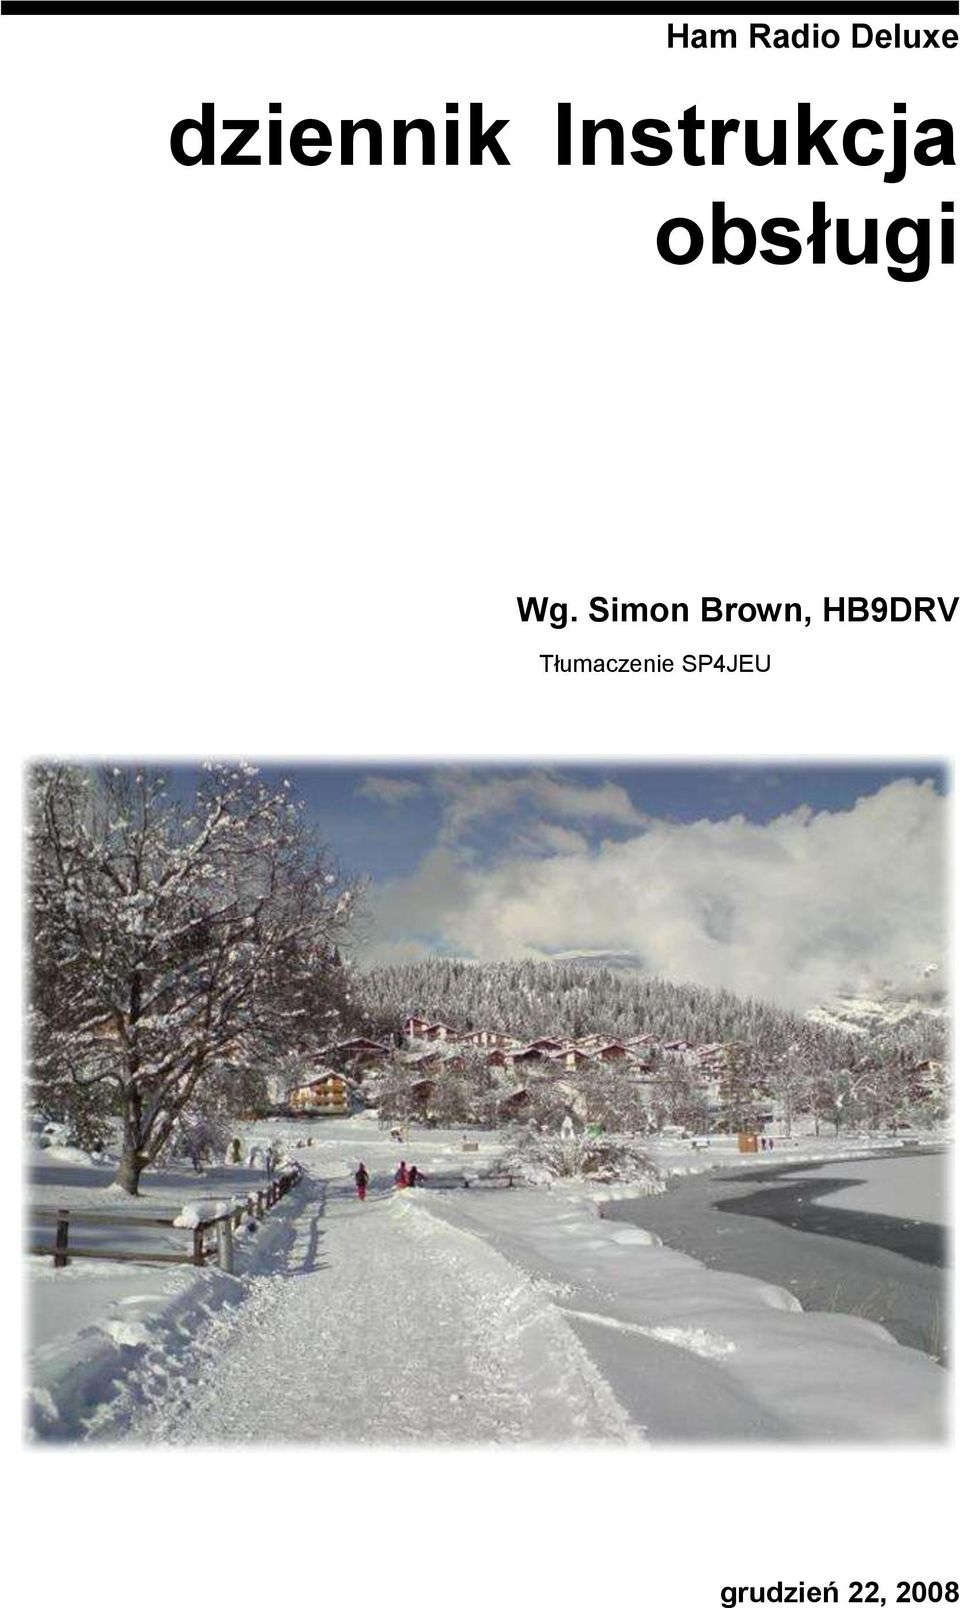 Simon Brown, HB9DRV